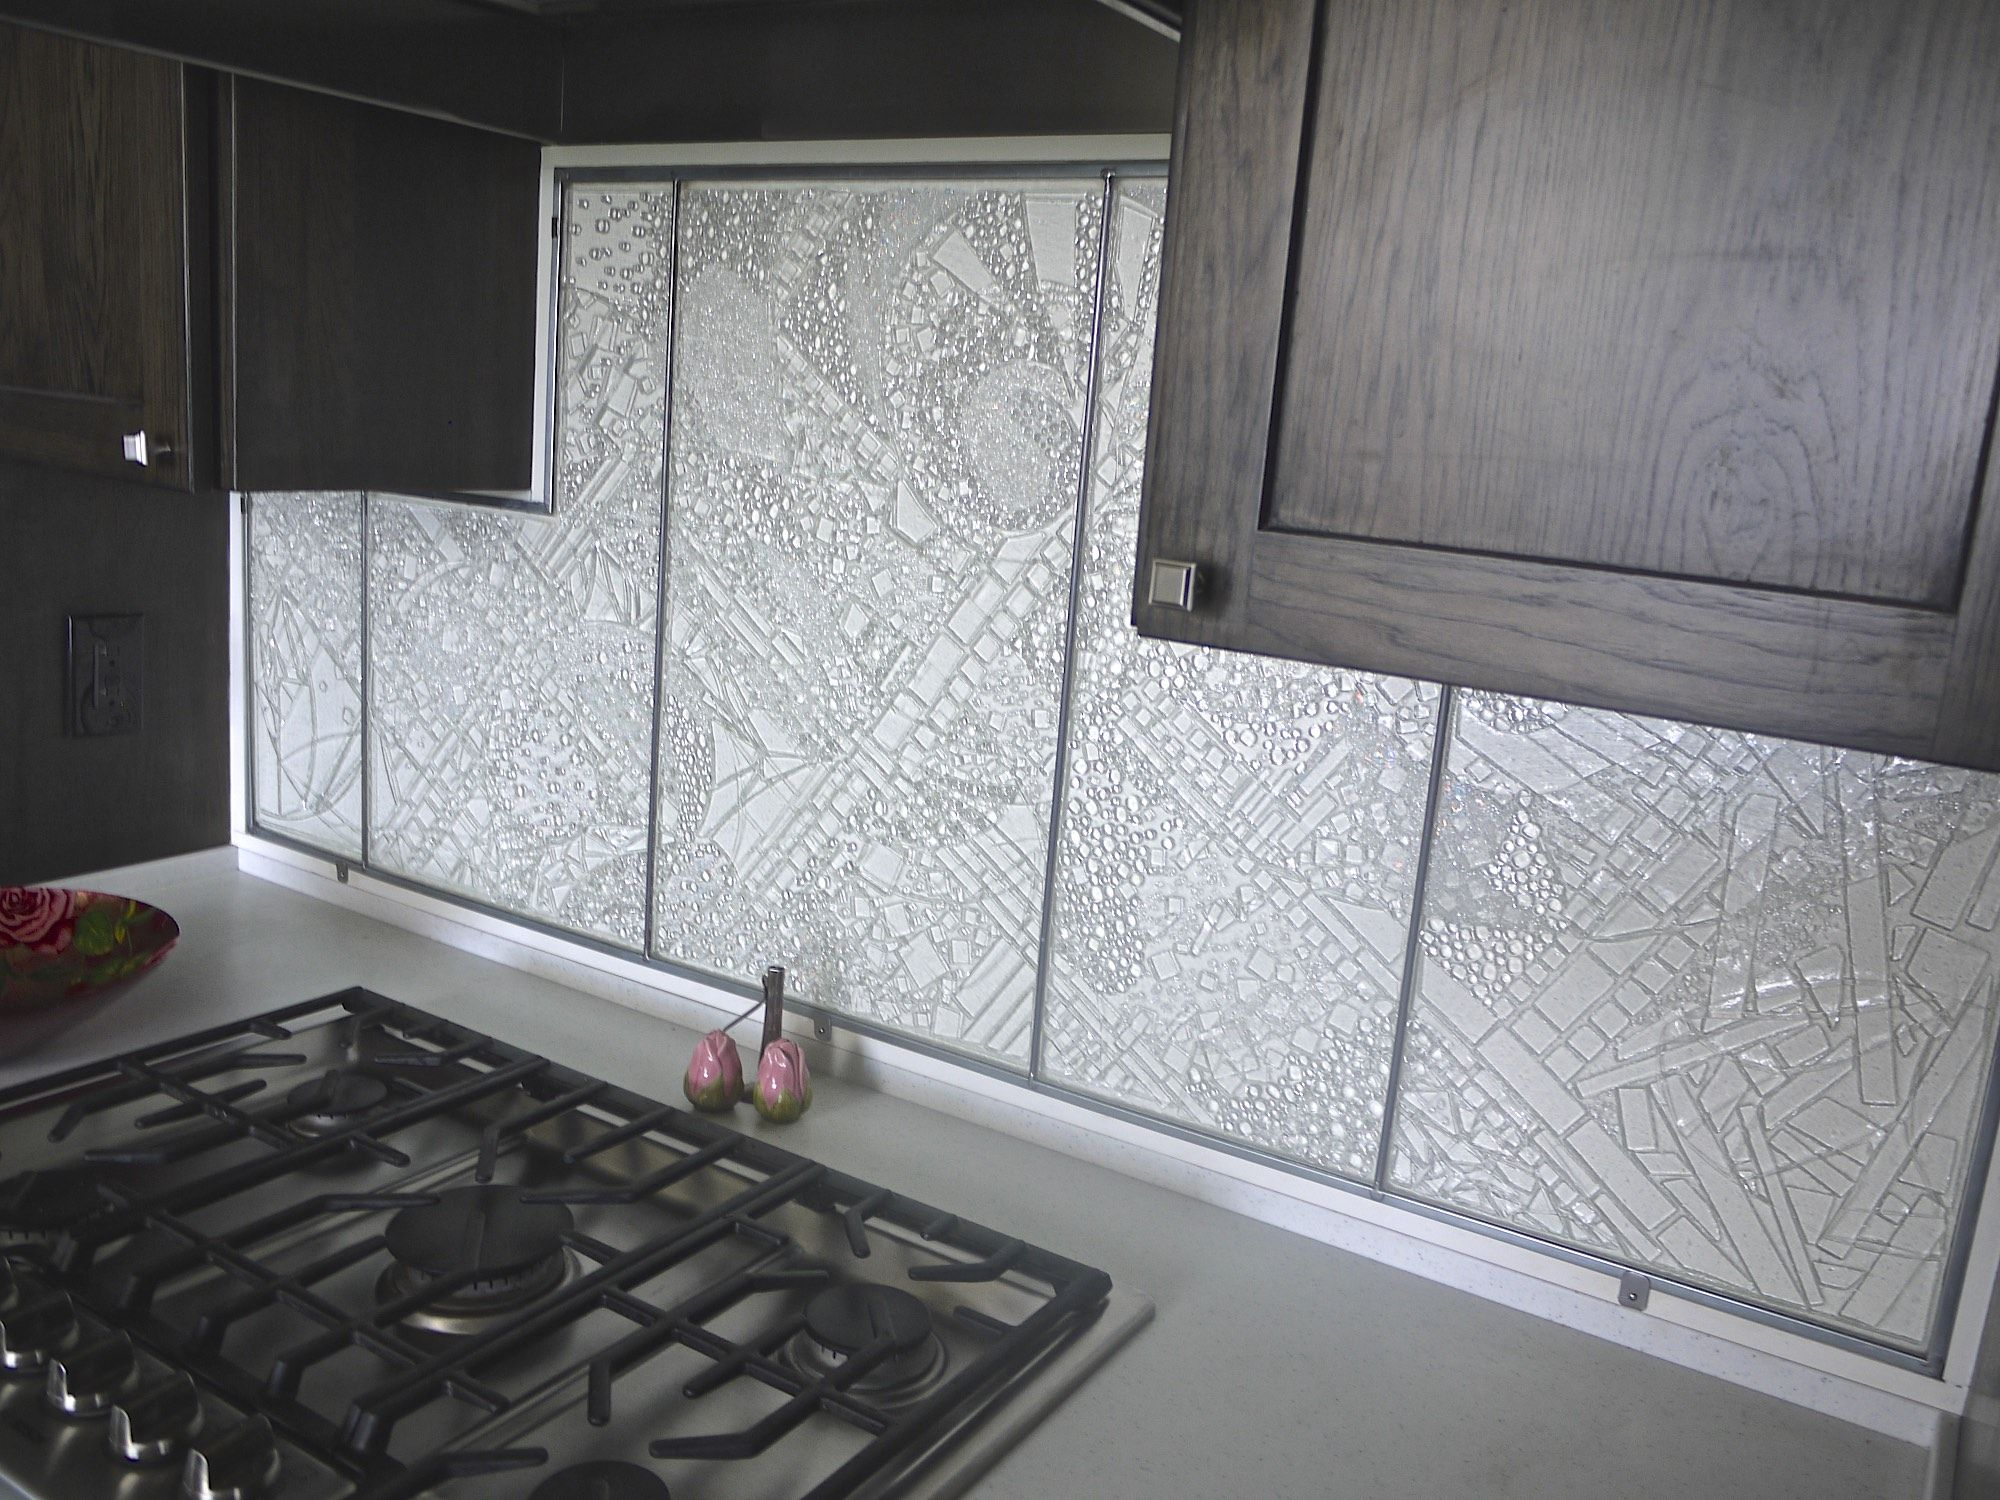 Custom Made Backsplash Done By Prairie Glass Studio In Topeka Ks This Stunning Piece Was Made From Only Clear Gl Custom Backsplash Fused Glass Art Backsplash